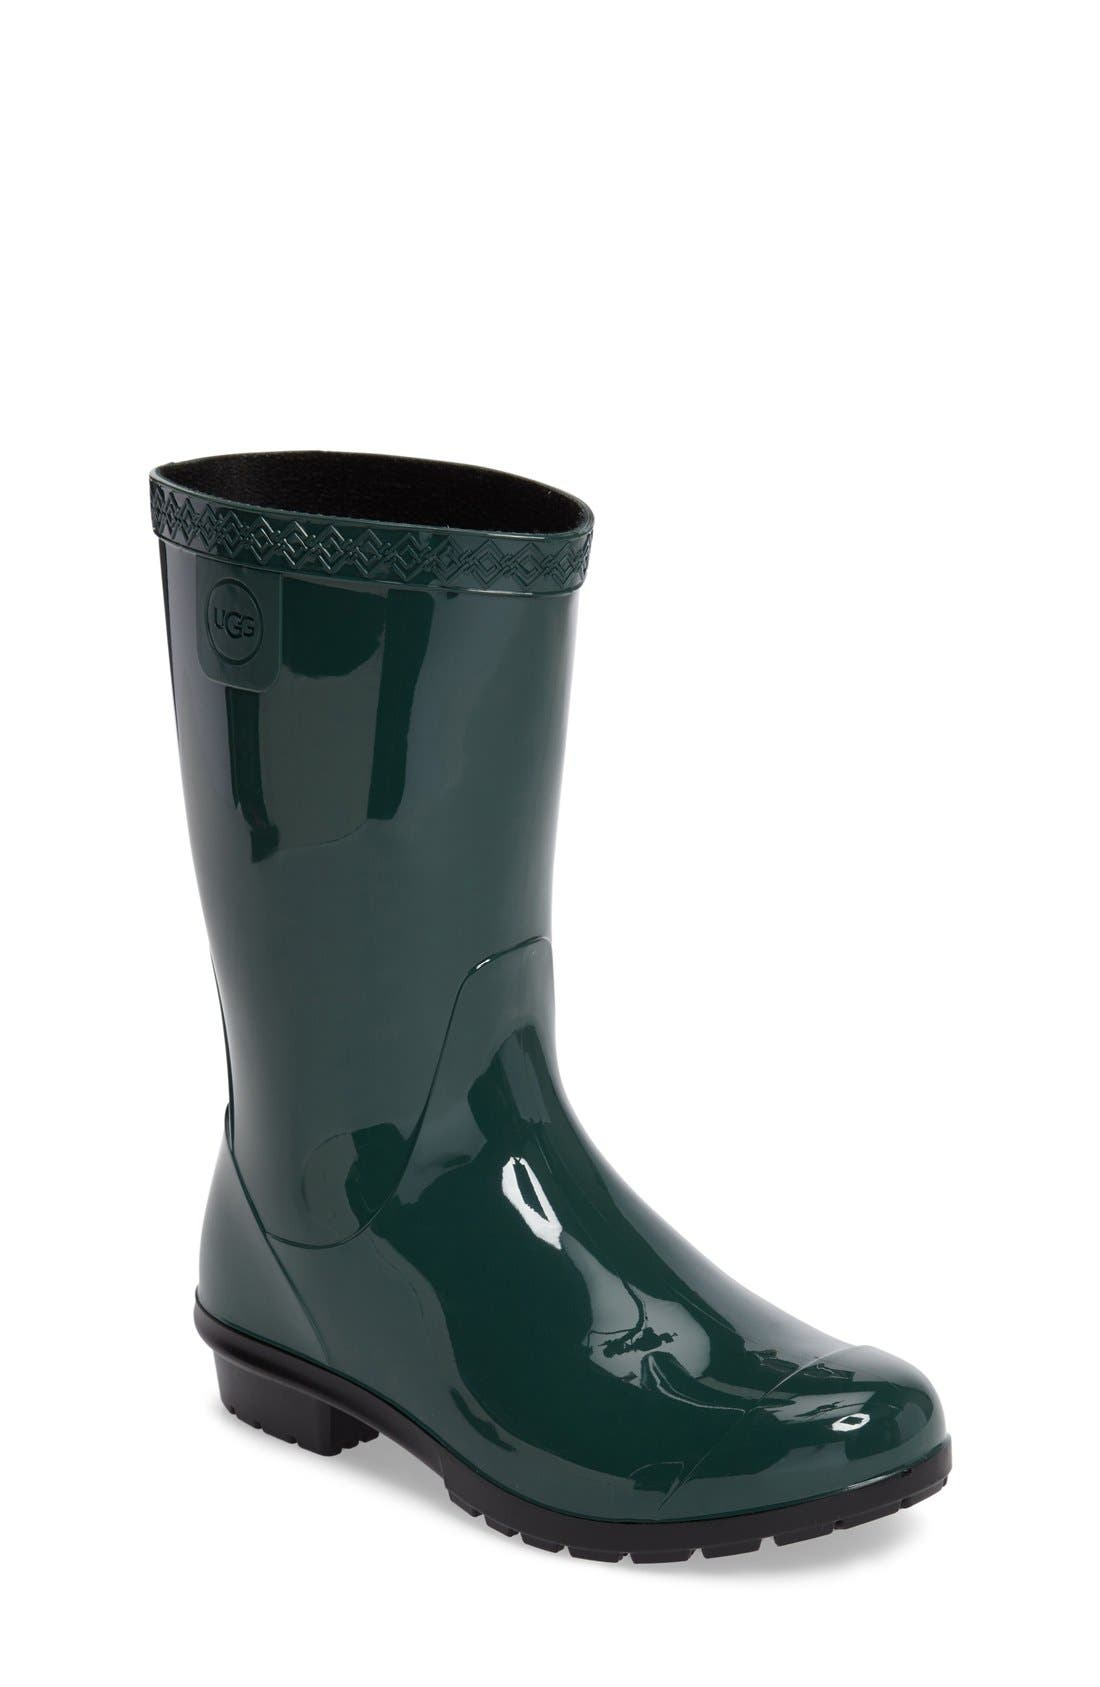 Main Image - UGG® Raana Waterproof Rain Boot (Little Kid & Big Kid)